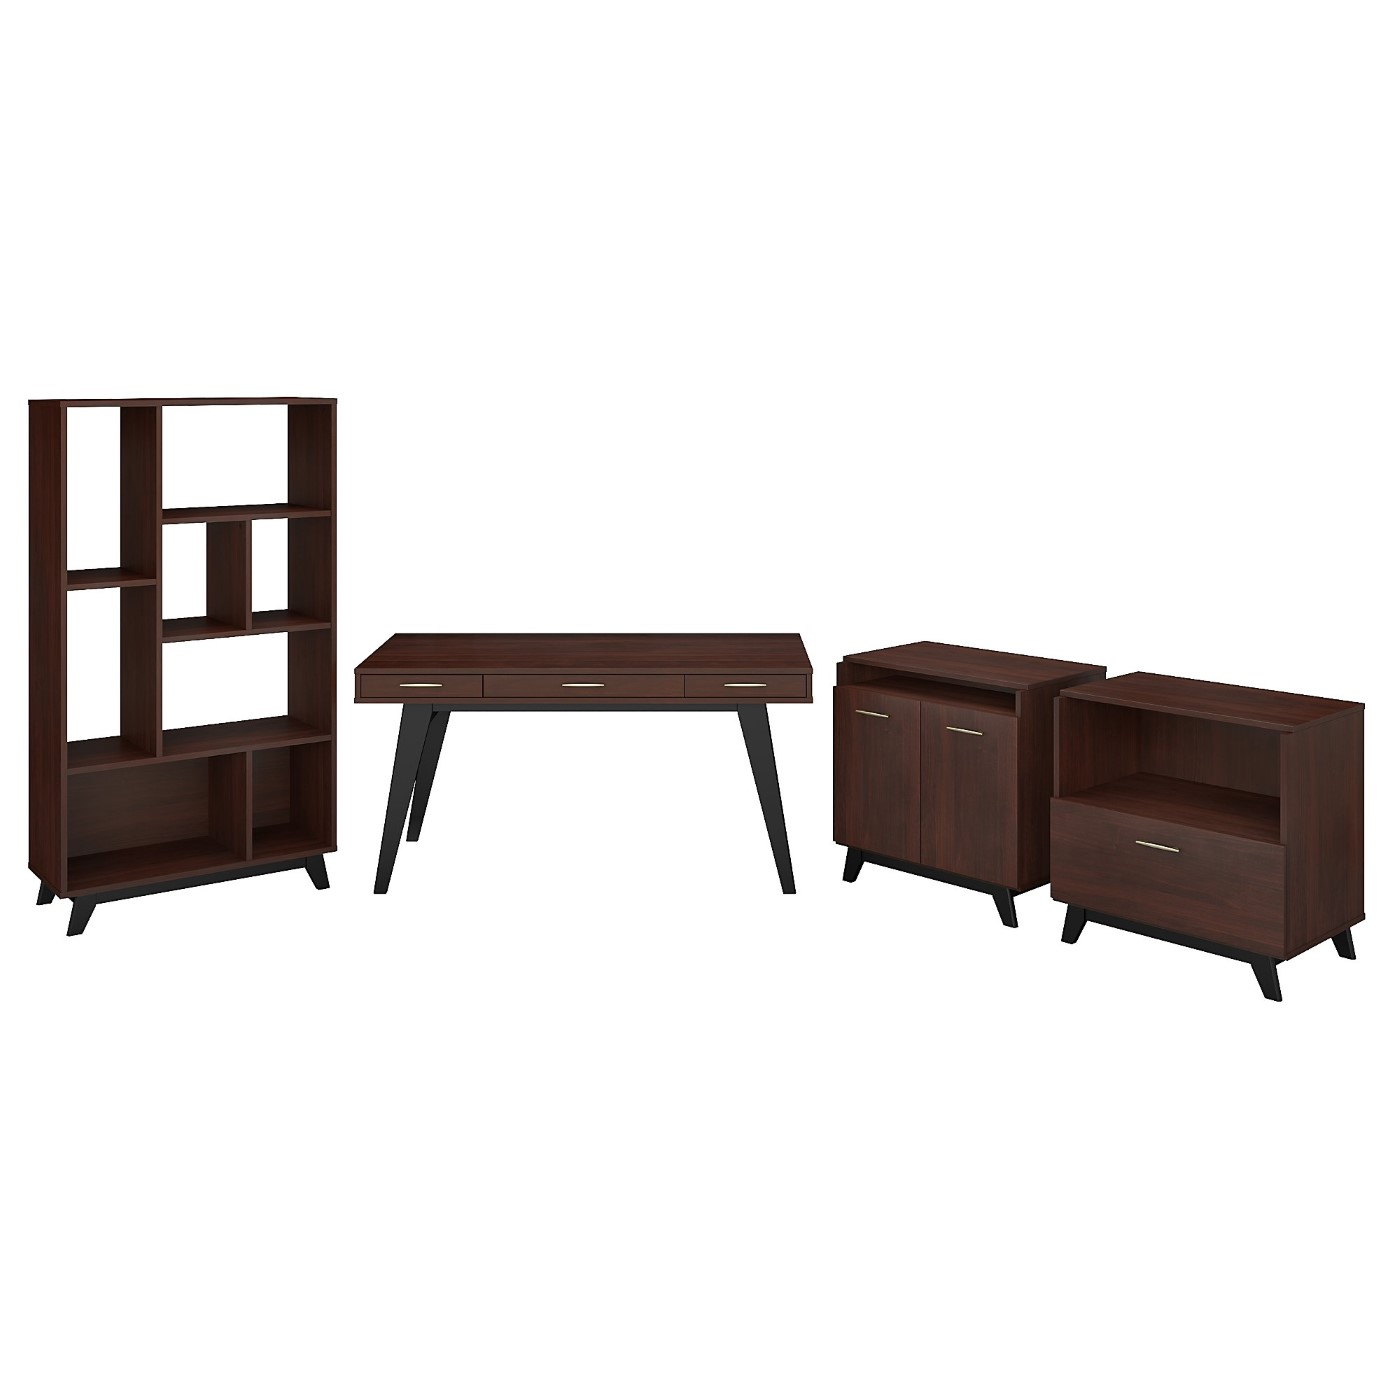 </b></font><b>The kathy ireland� Centura 60W x 30D Writing Desk with Lateral File Cabinet, Bookcase and Accent Storage Cabinet is Sustainable Eco Friendly Furniture. Includes Free Shipping! 30H x 72L x 72W</b></font>  VIDEO BELOW. <p>RATING:&#11088;&#11088;&#11088;&#11088;&#11088;</b></font></b>